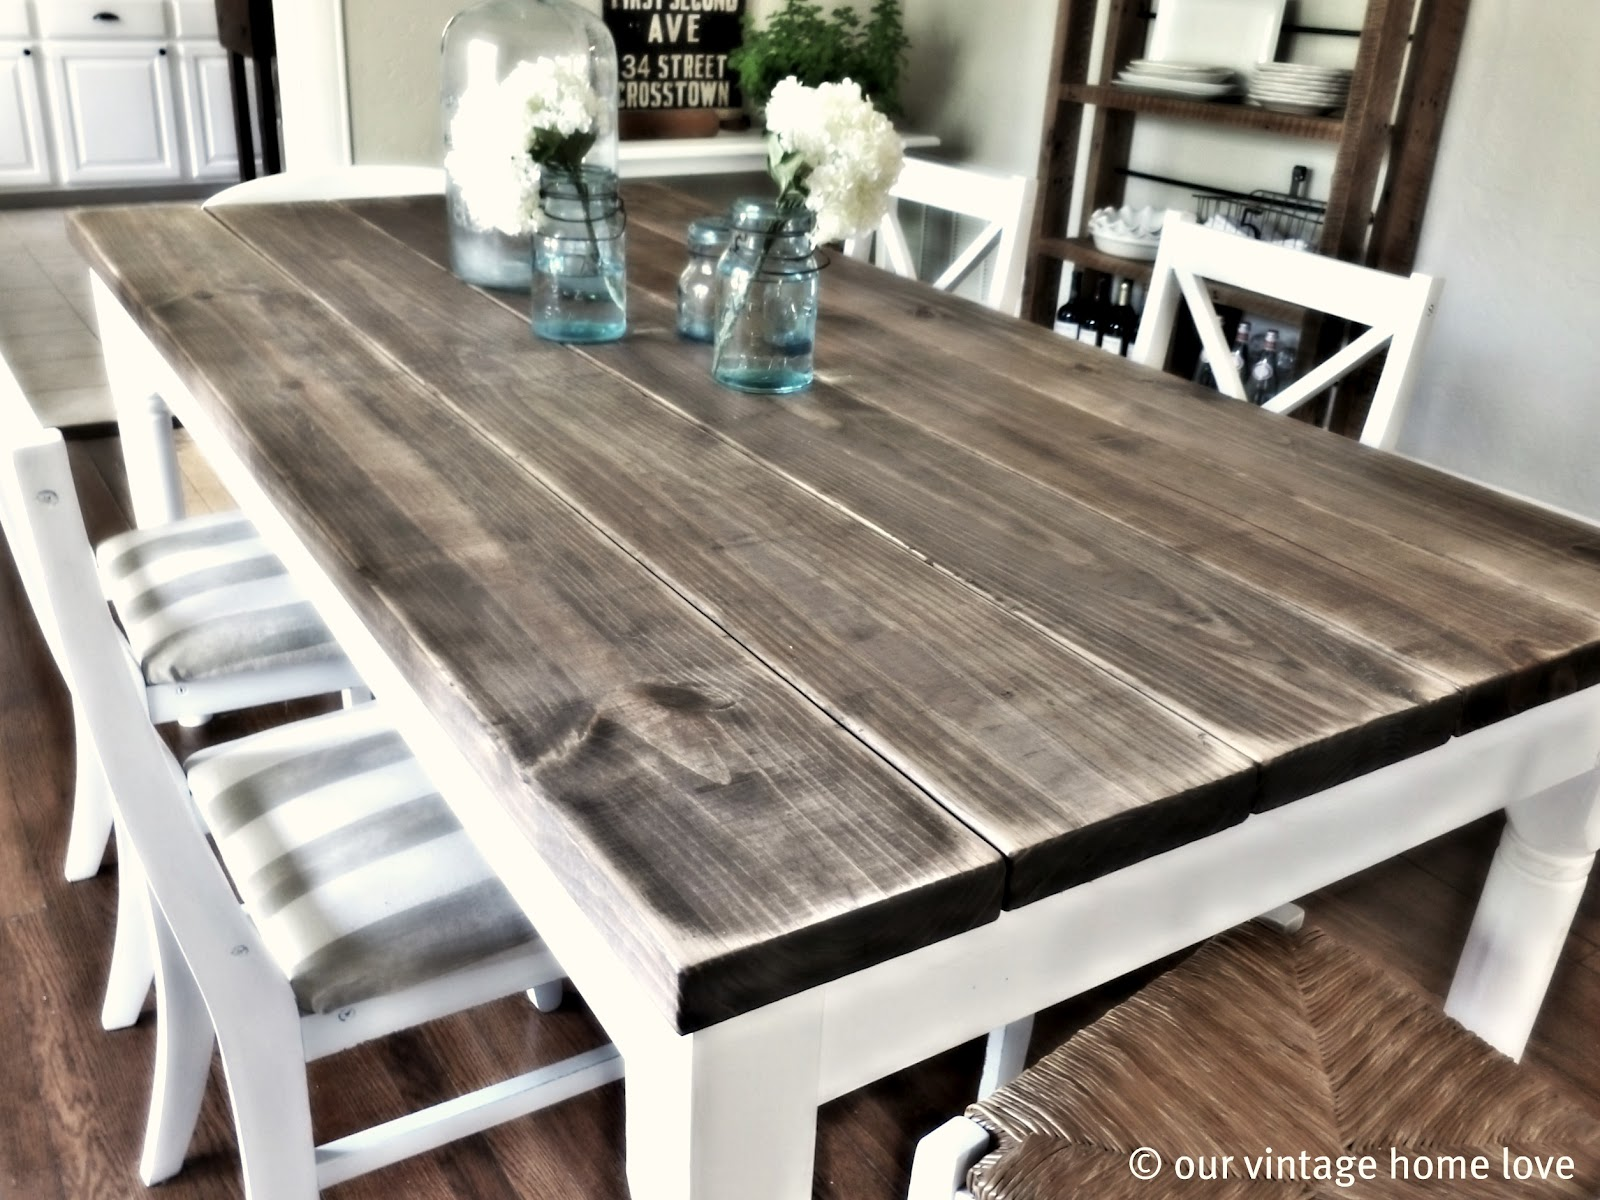 & vintage home love: Dining Room Table